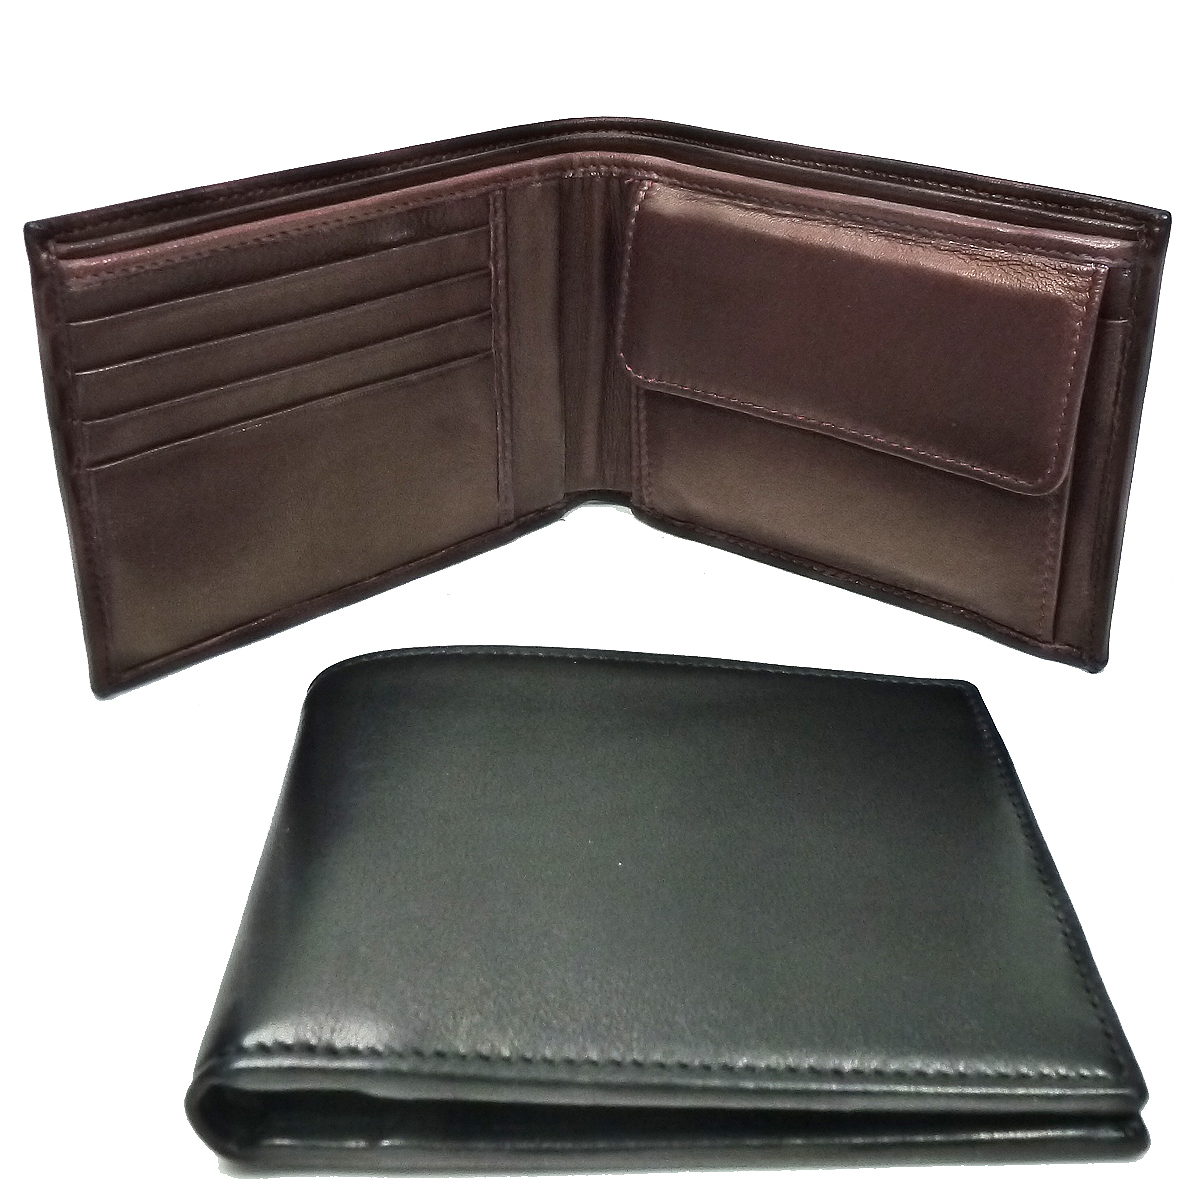 1398 men's wallet with coin purse by Bottega Fiorentina